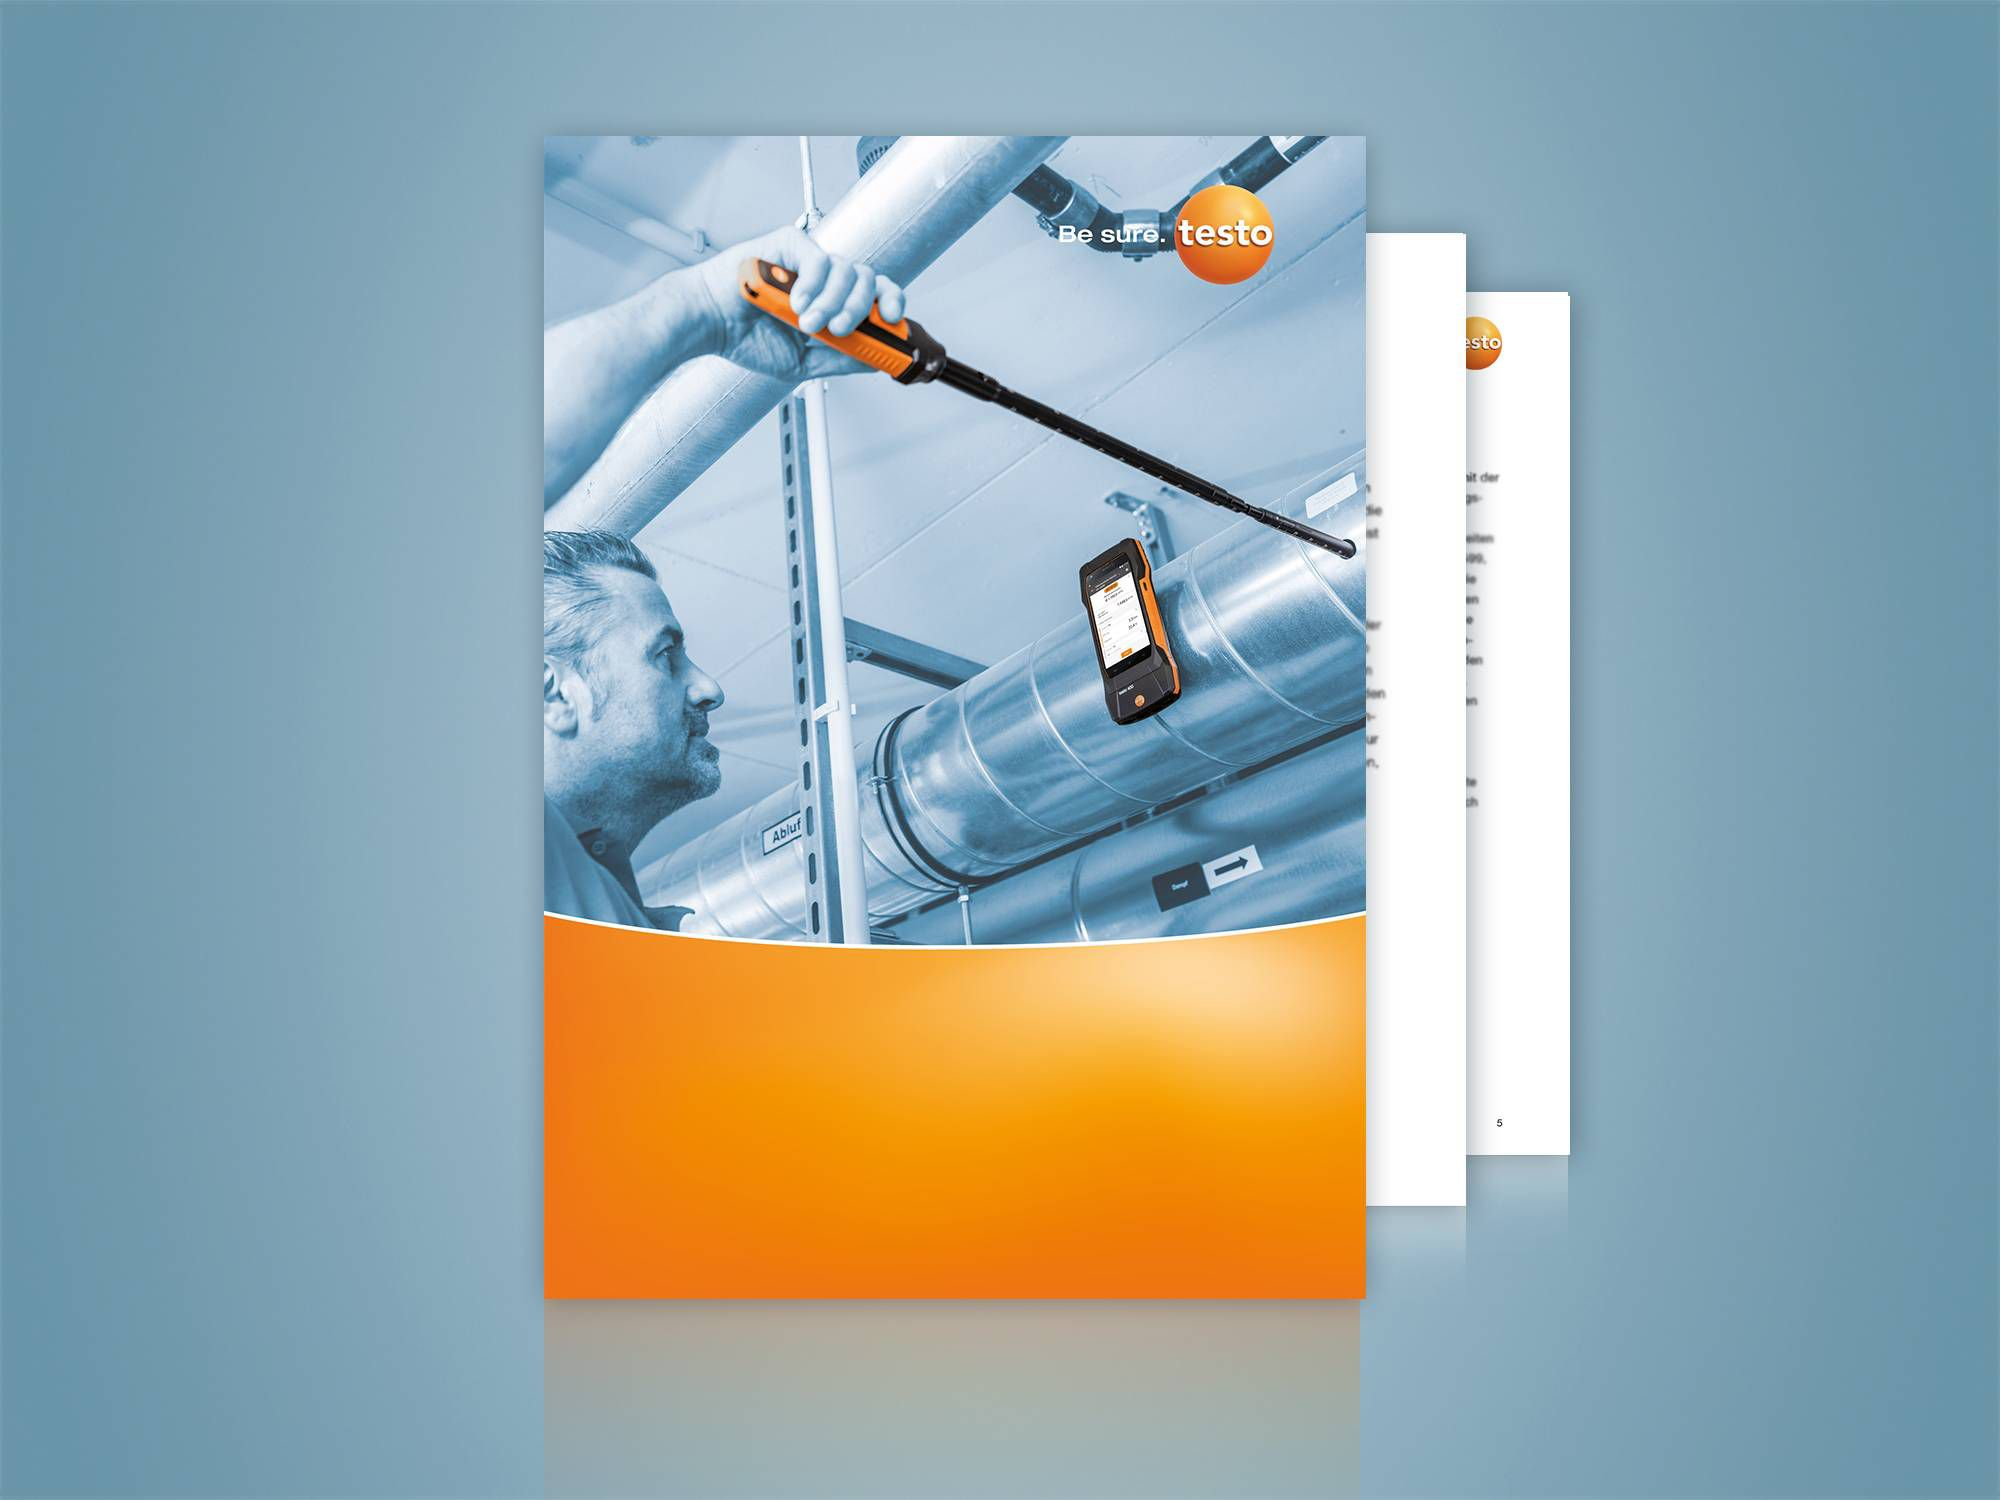 Download: Practical guide: Air flow measurements in ducts according to DIN EN 12599